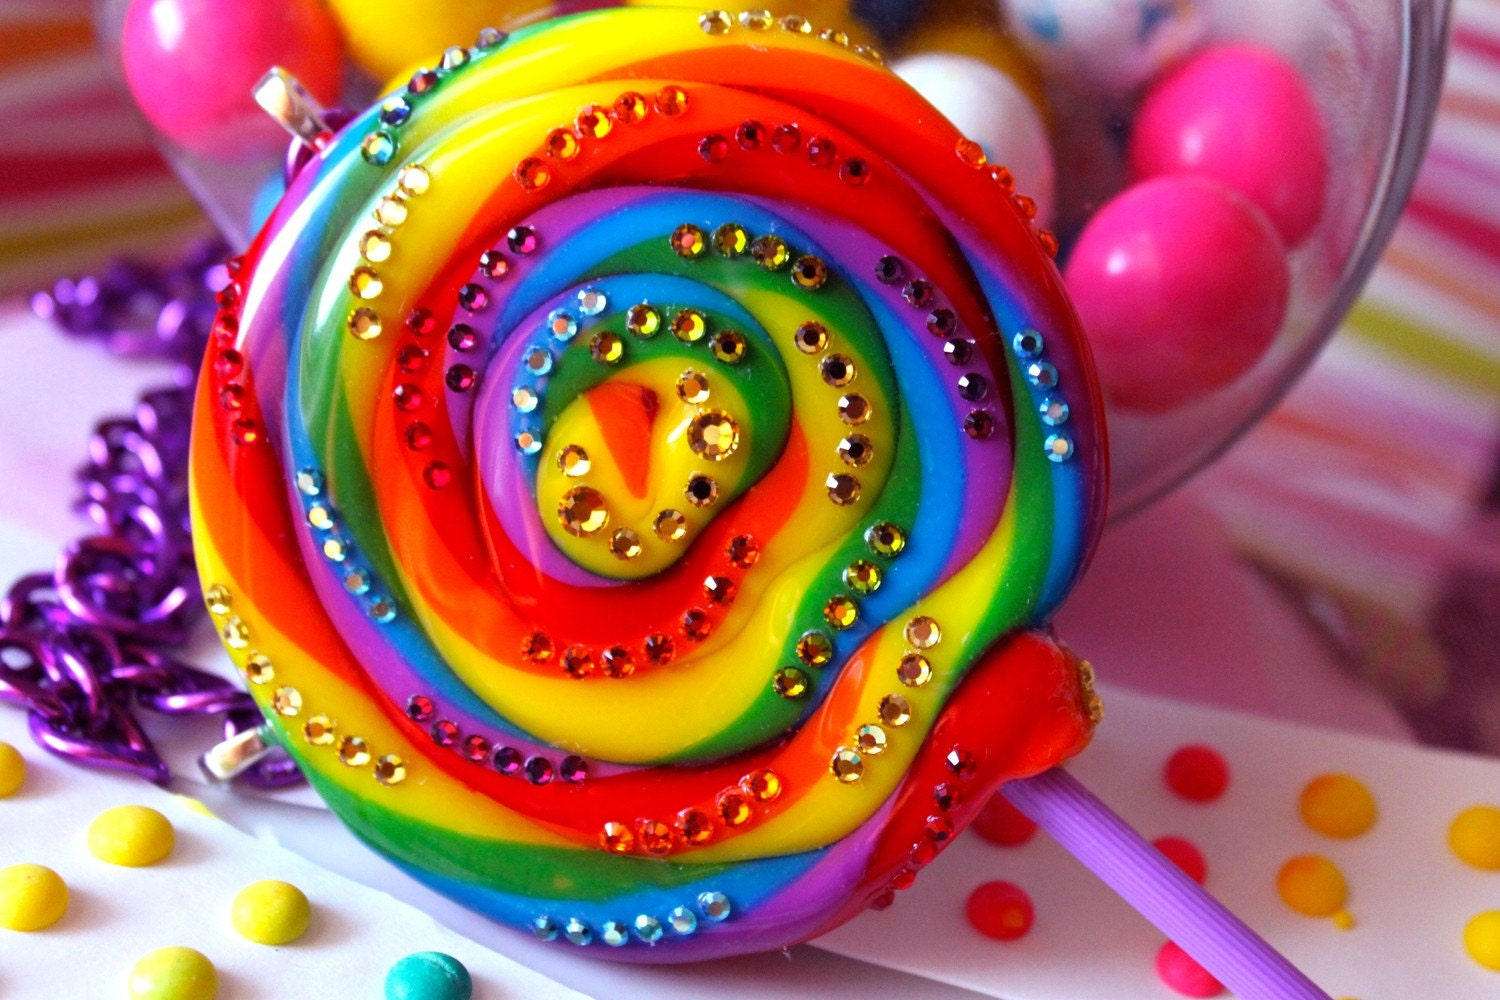 Super Duper Lollipop Luxe Candy Resin Candy Glam